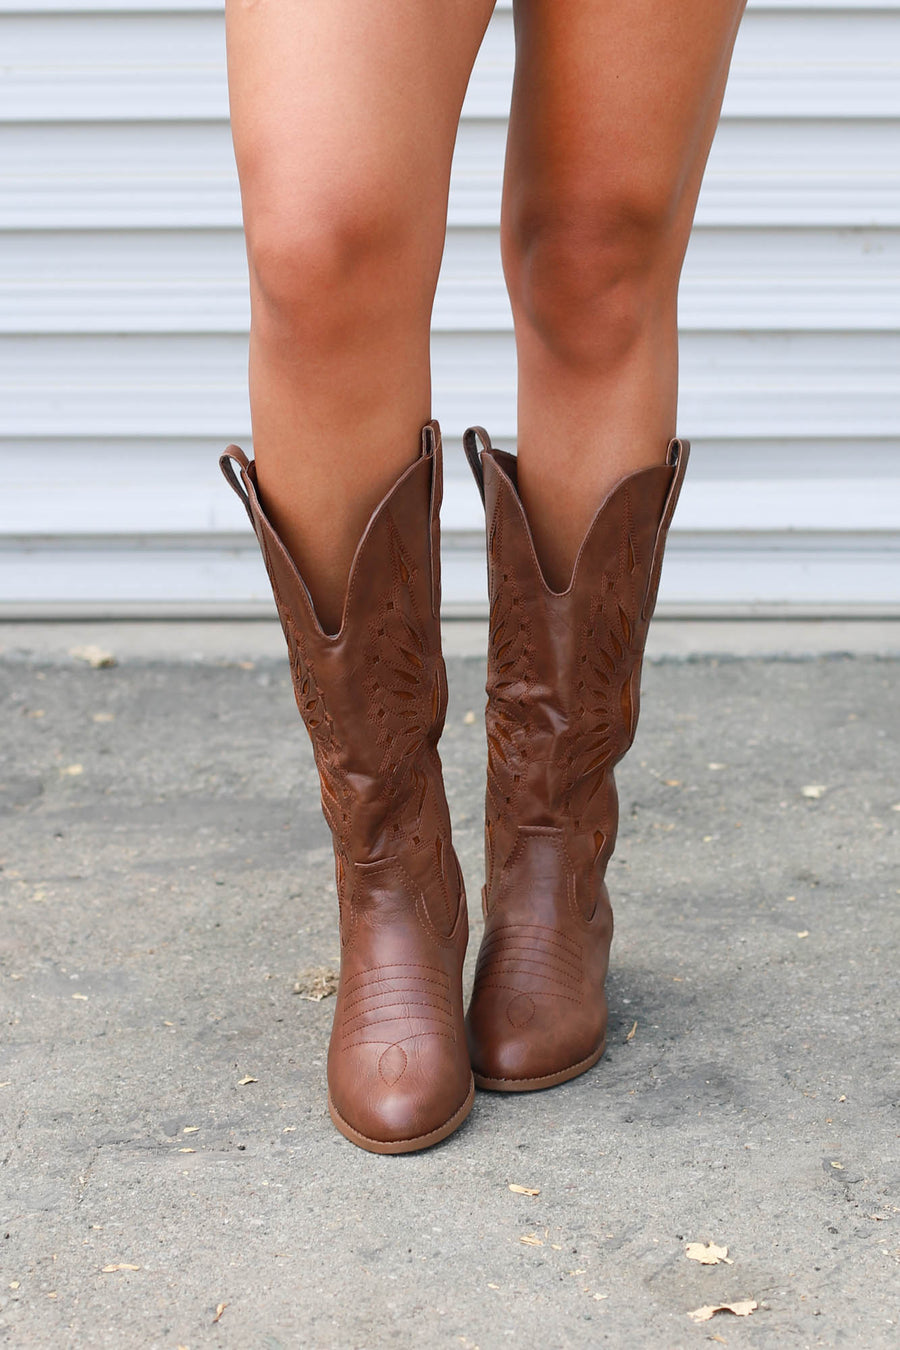 Western Dixie Sun Boots : Brown - ShopSpoiled